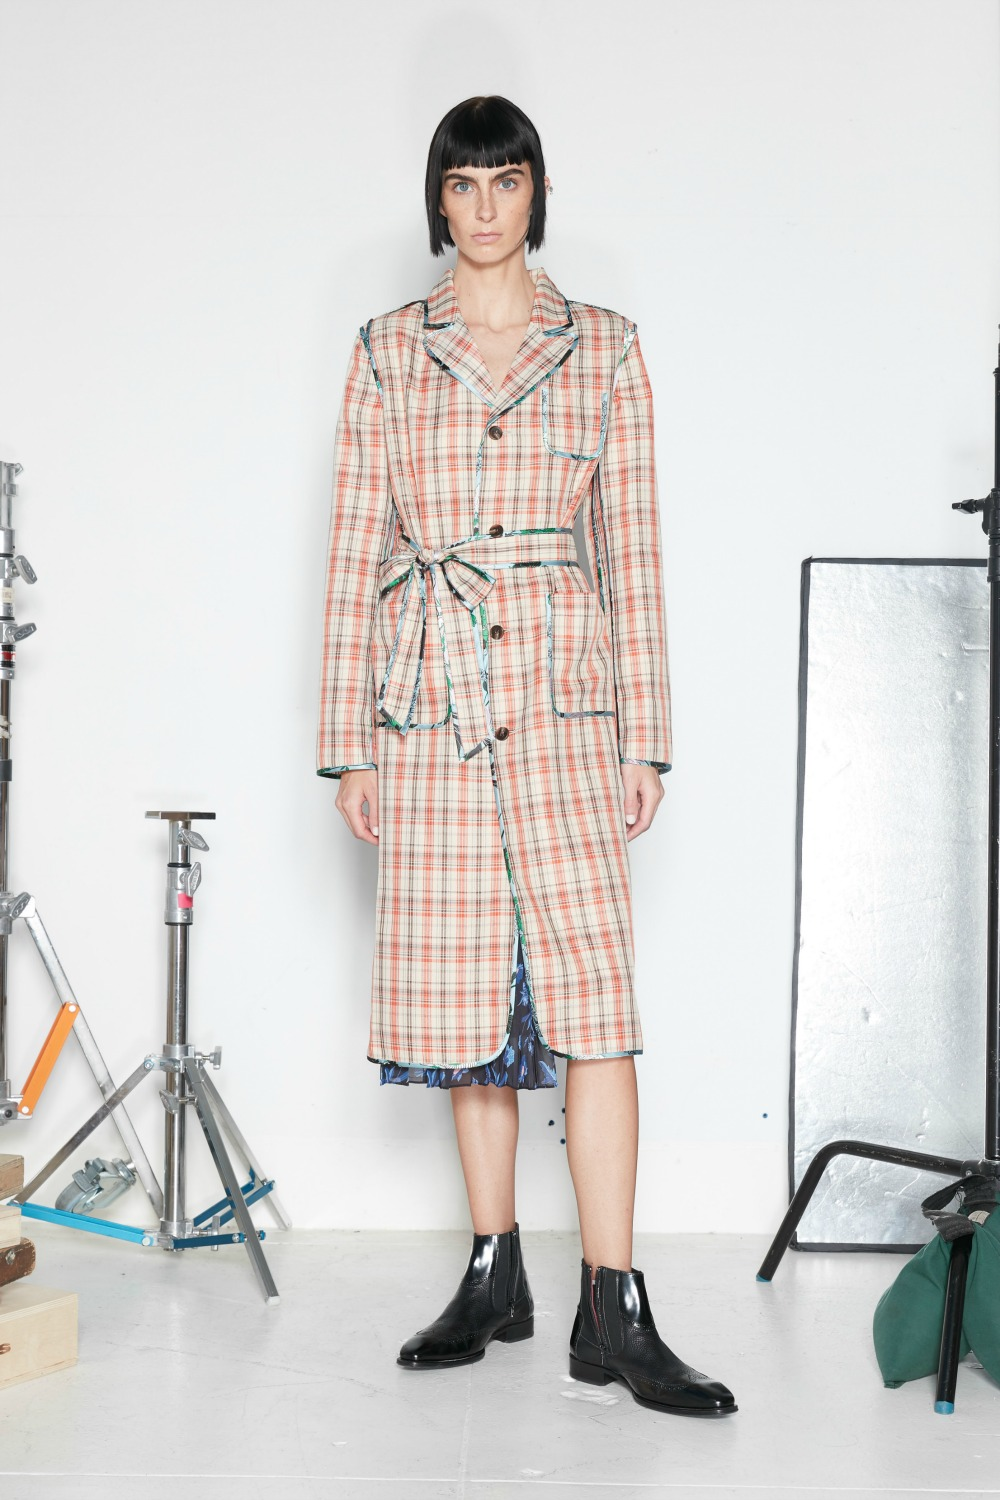 snow-xue-gao-spring-2021-collection-virtual-fashion-week-blog-dreaminlace-look-26